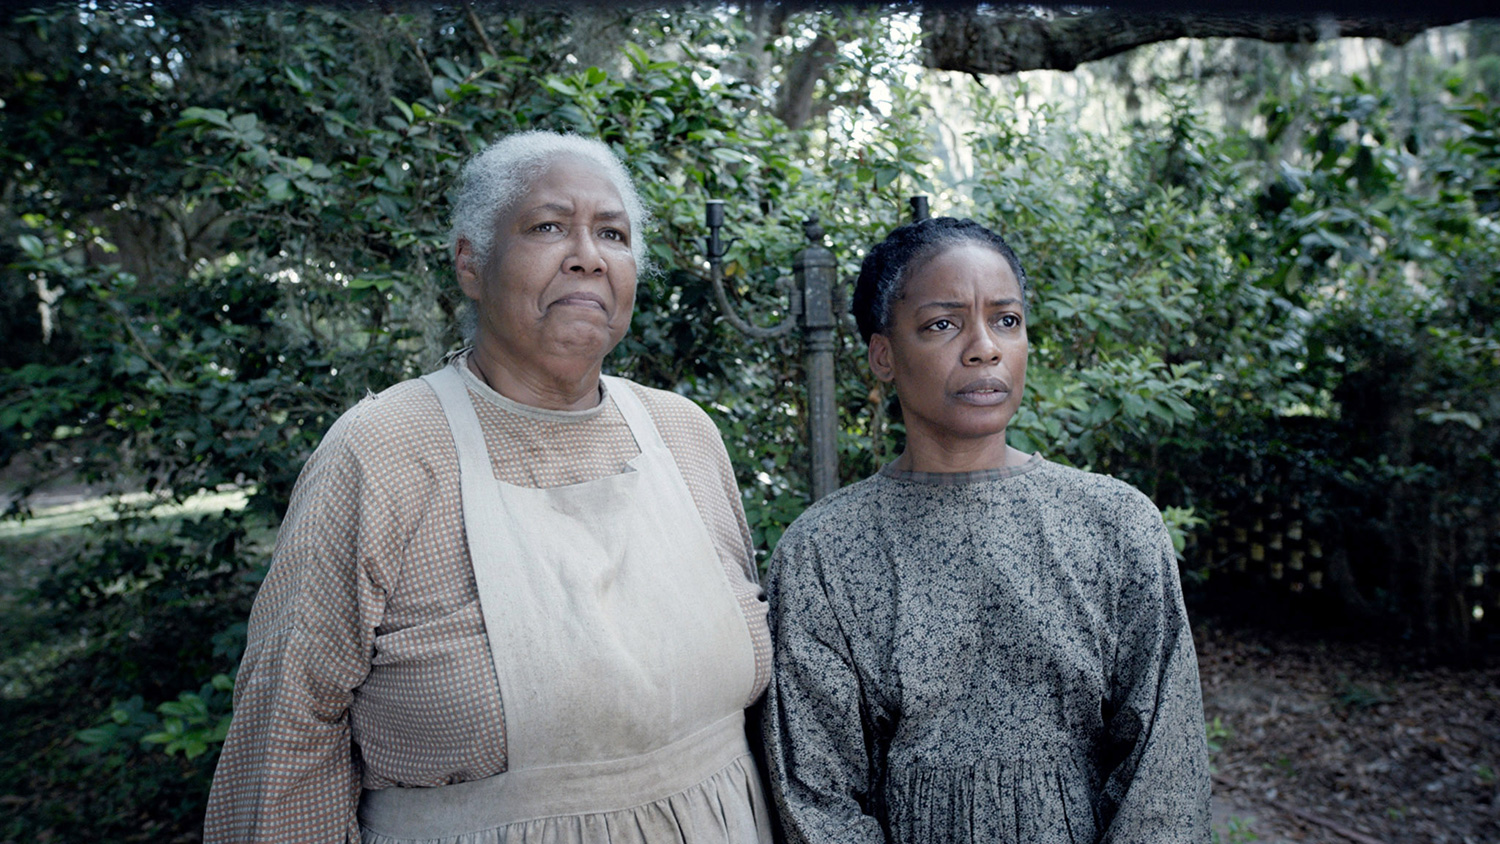 THE BIRTH OF A NATION, from left: Esther Scott, Aunjanue Ellis, 2016. TM and copyright ©Fox Searchlight Pictures. All rights reserved./Courtesy Everett collection.